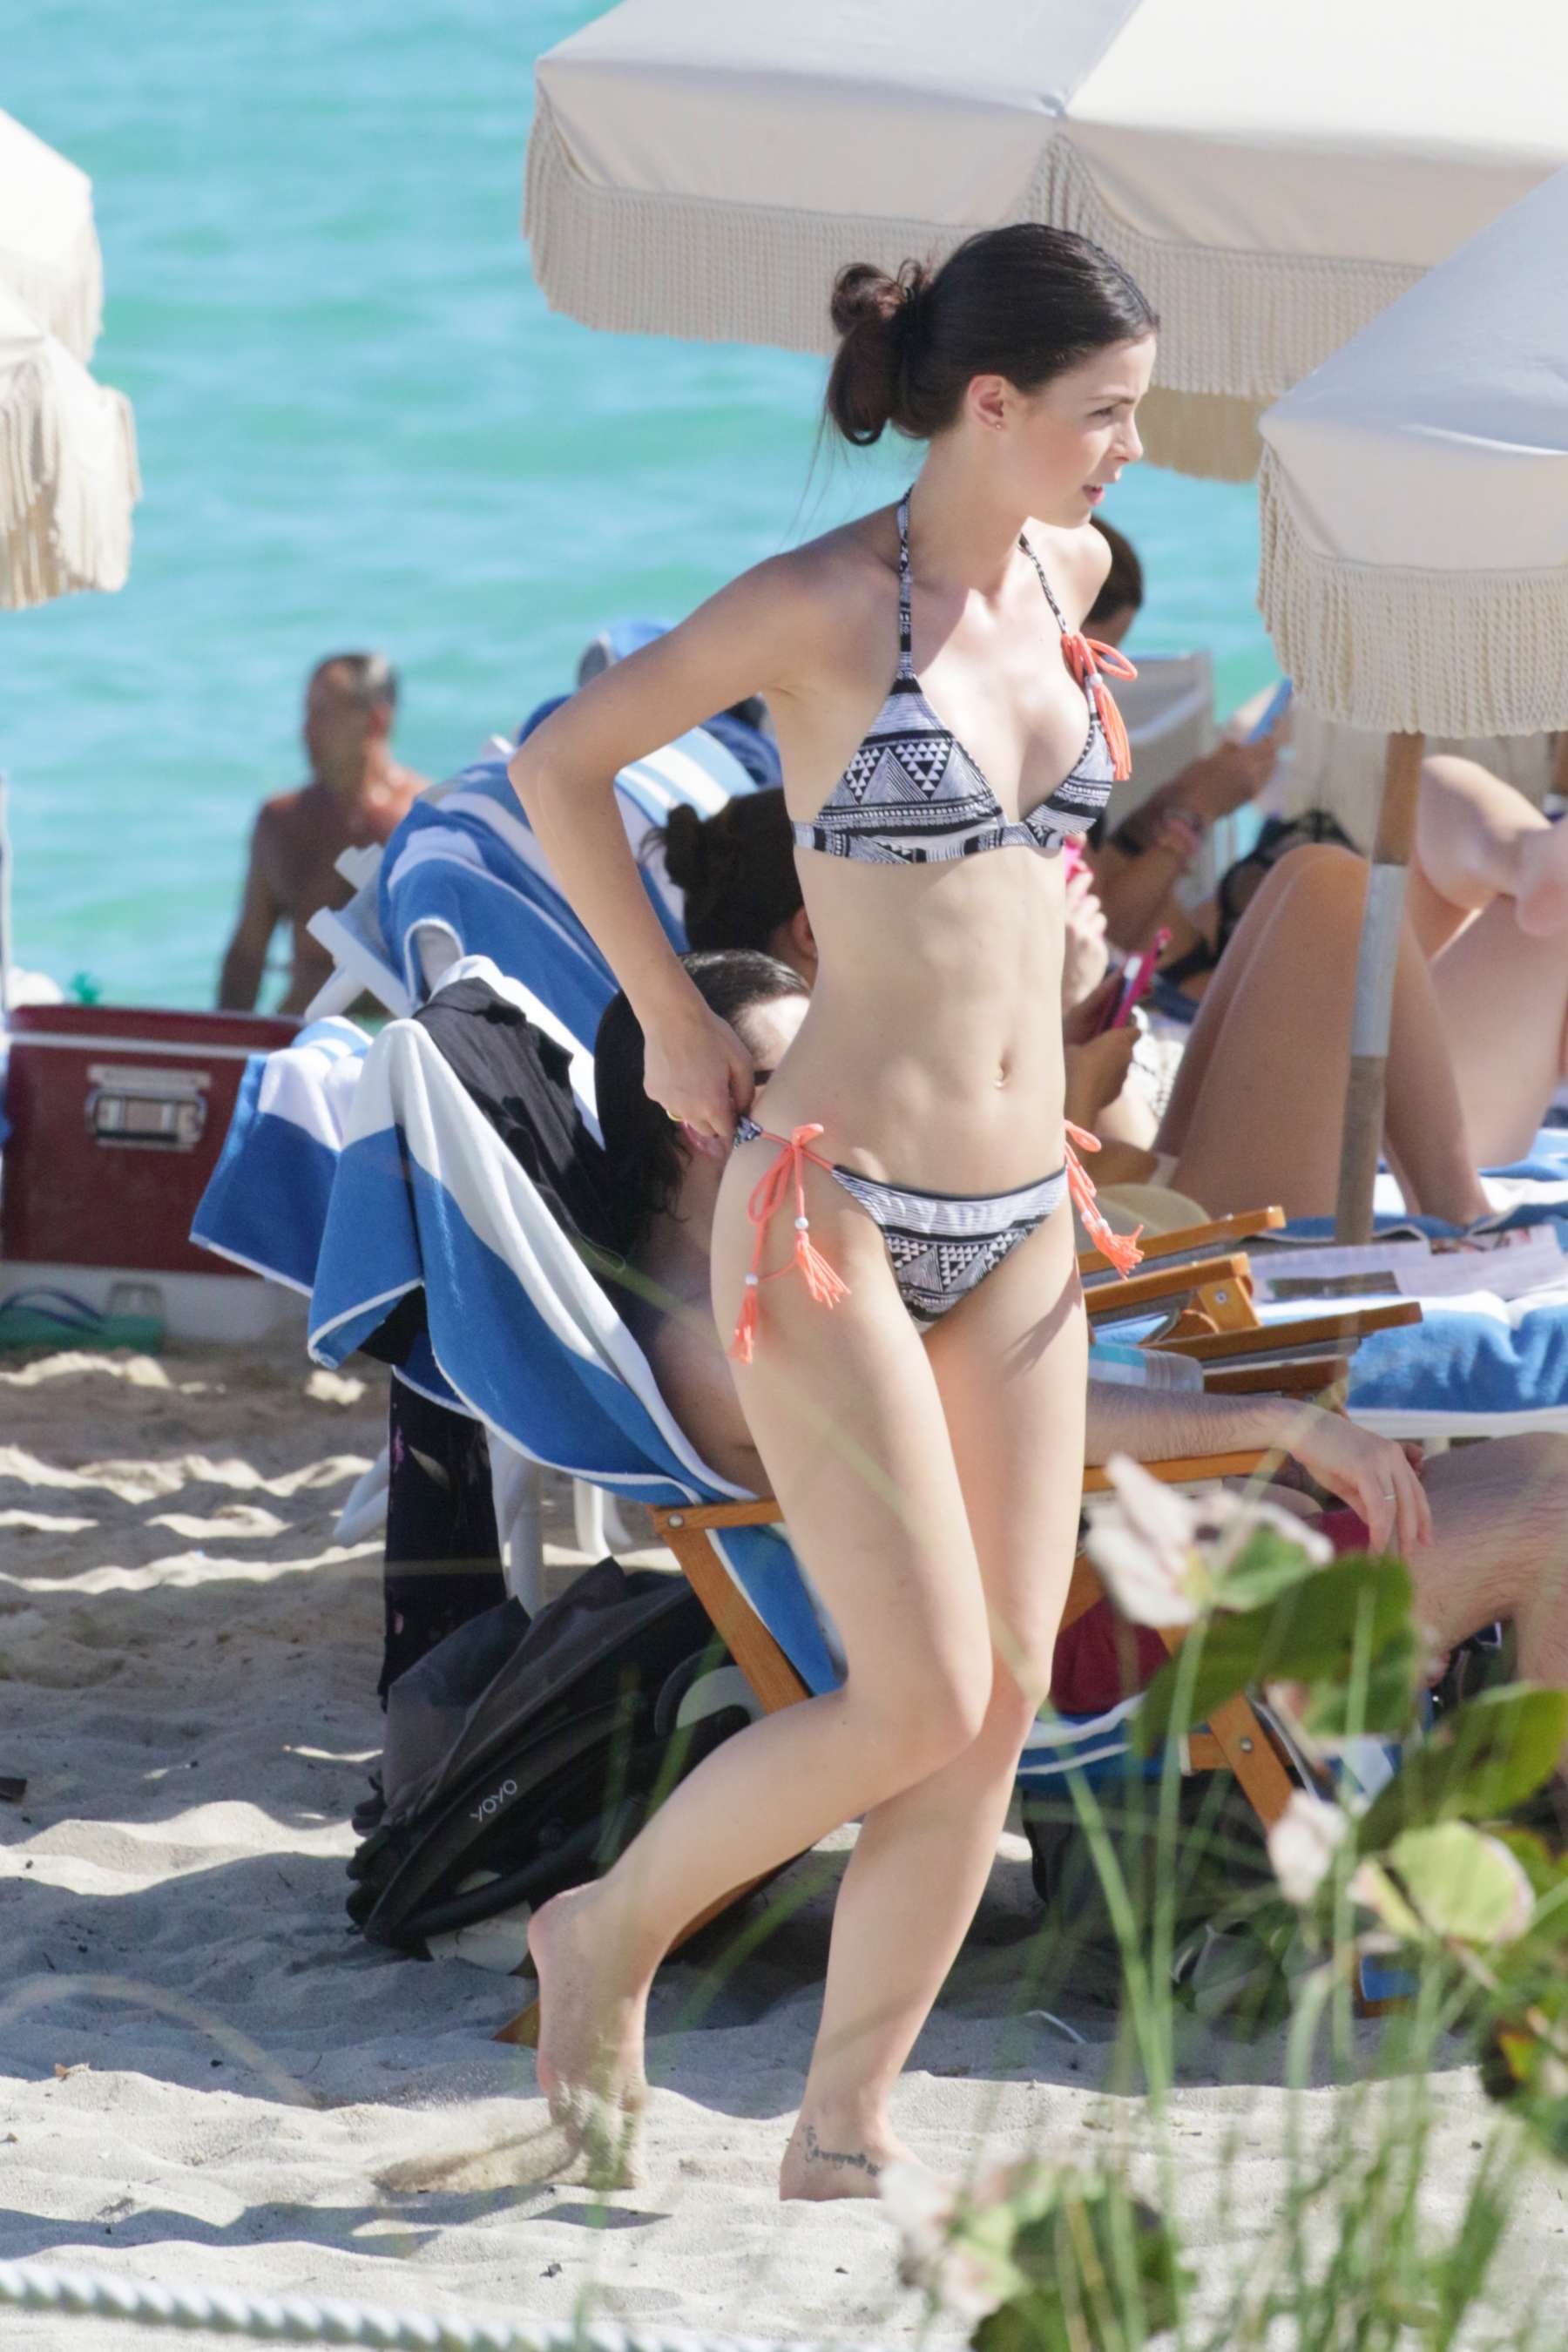 Leaked Swimsuit Lena Meyer-Landrut  nude (26 pics), YouTube, in bikini